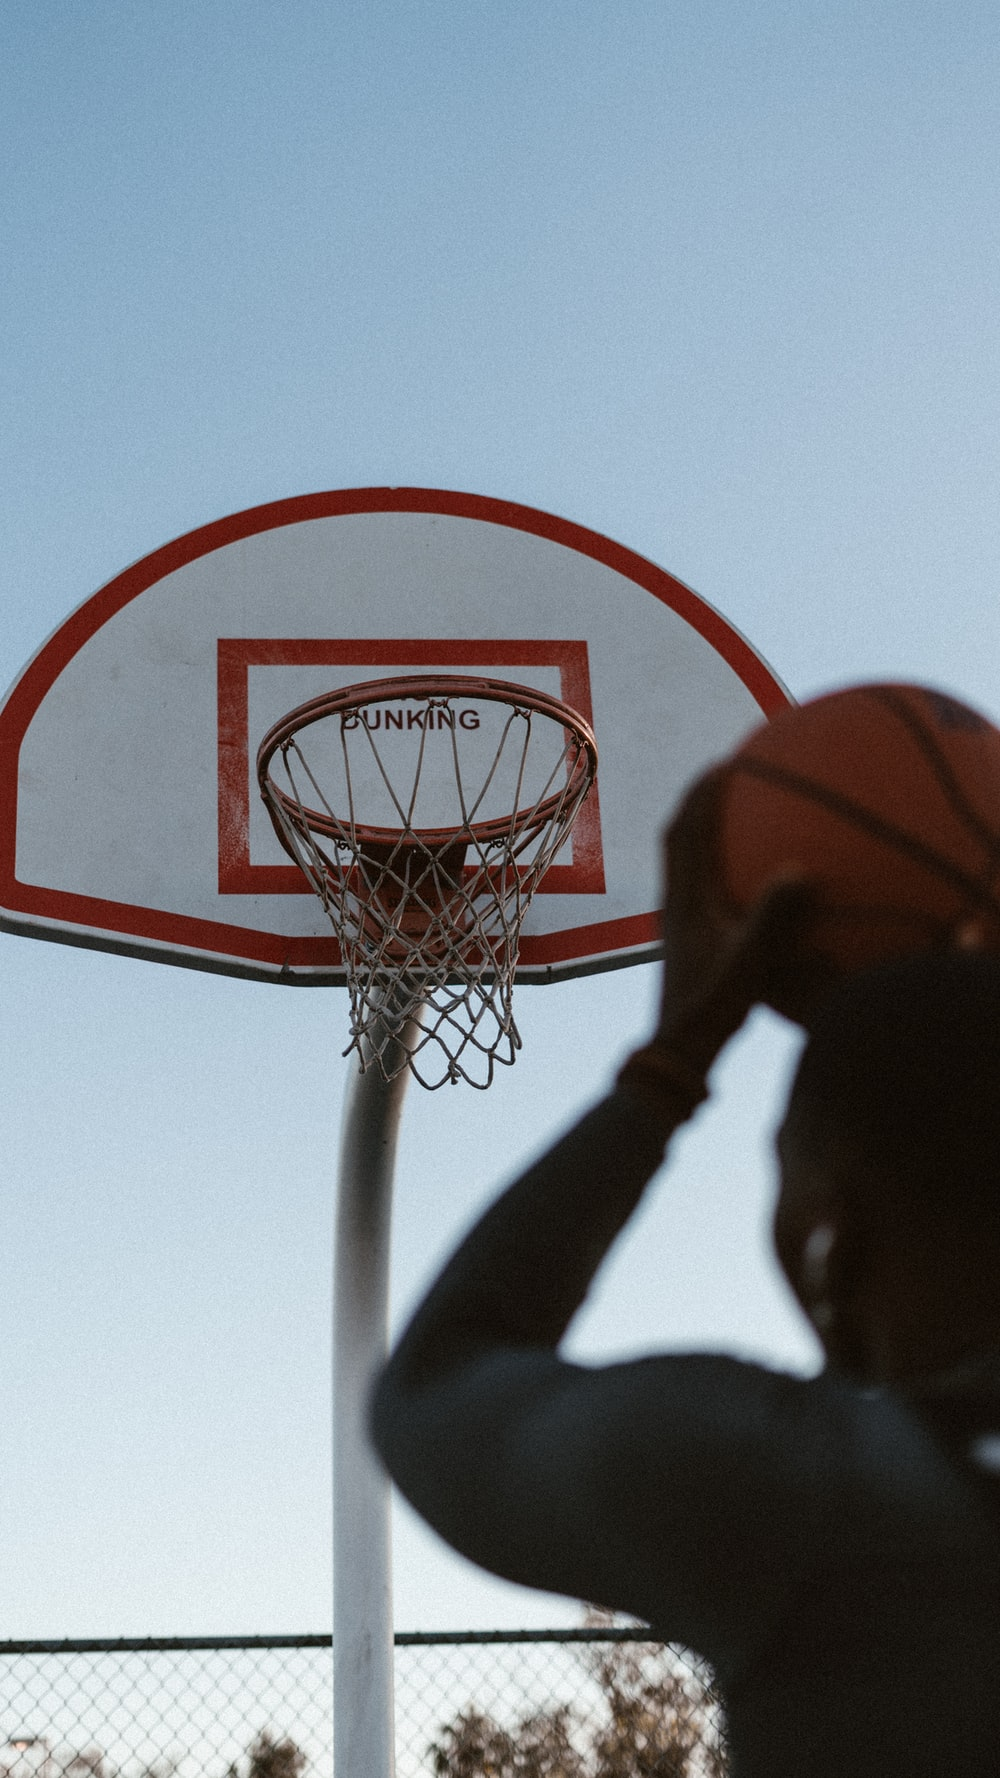 person trying to shoot the ball near basketball hoop